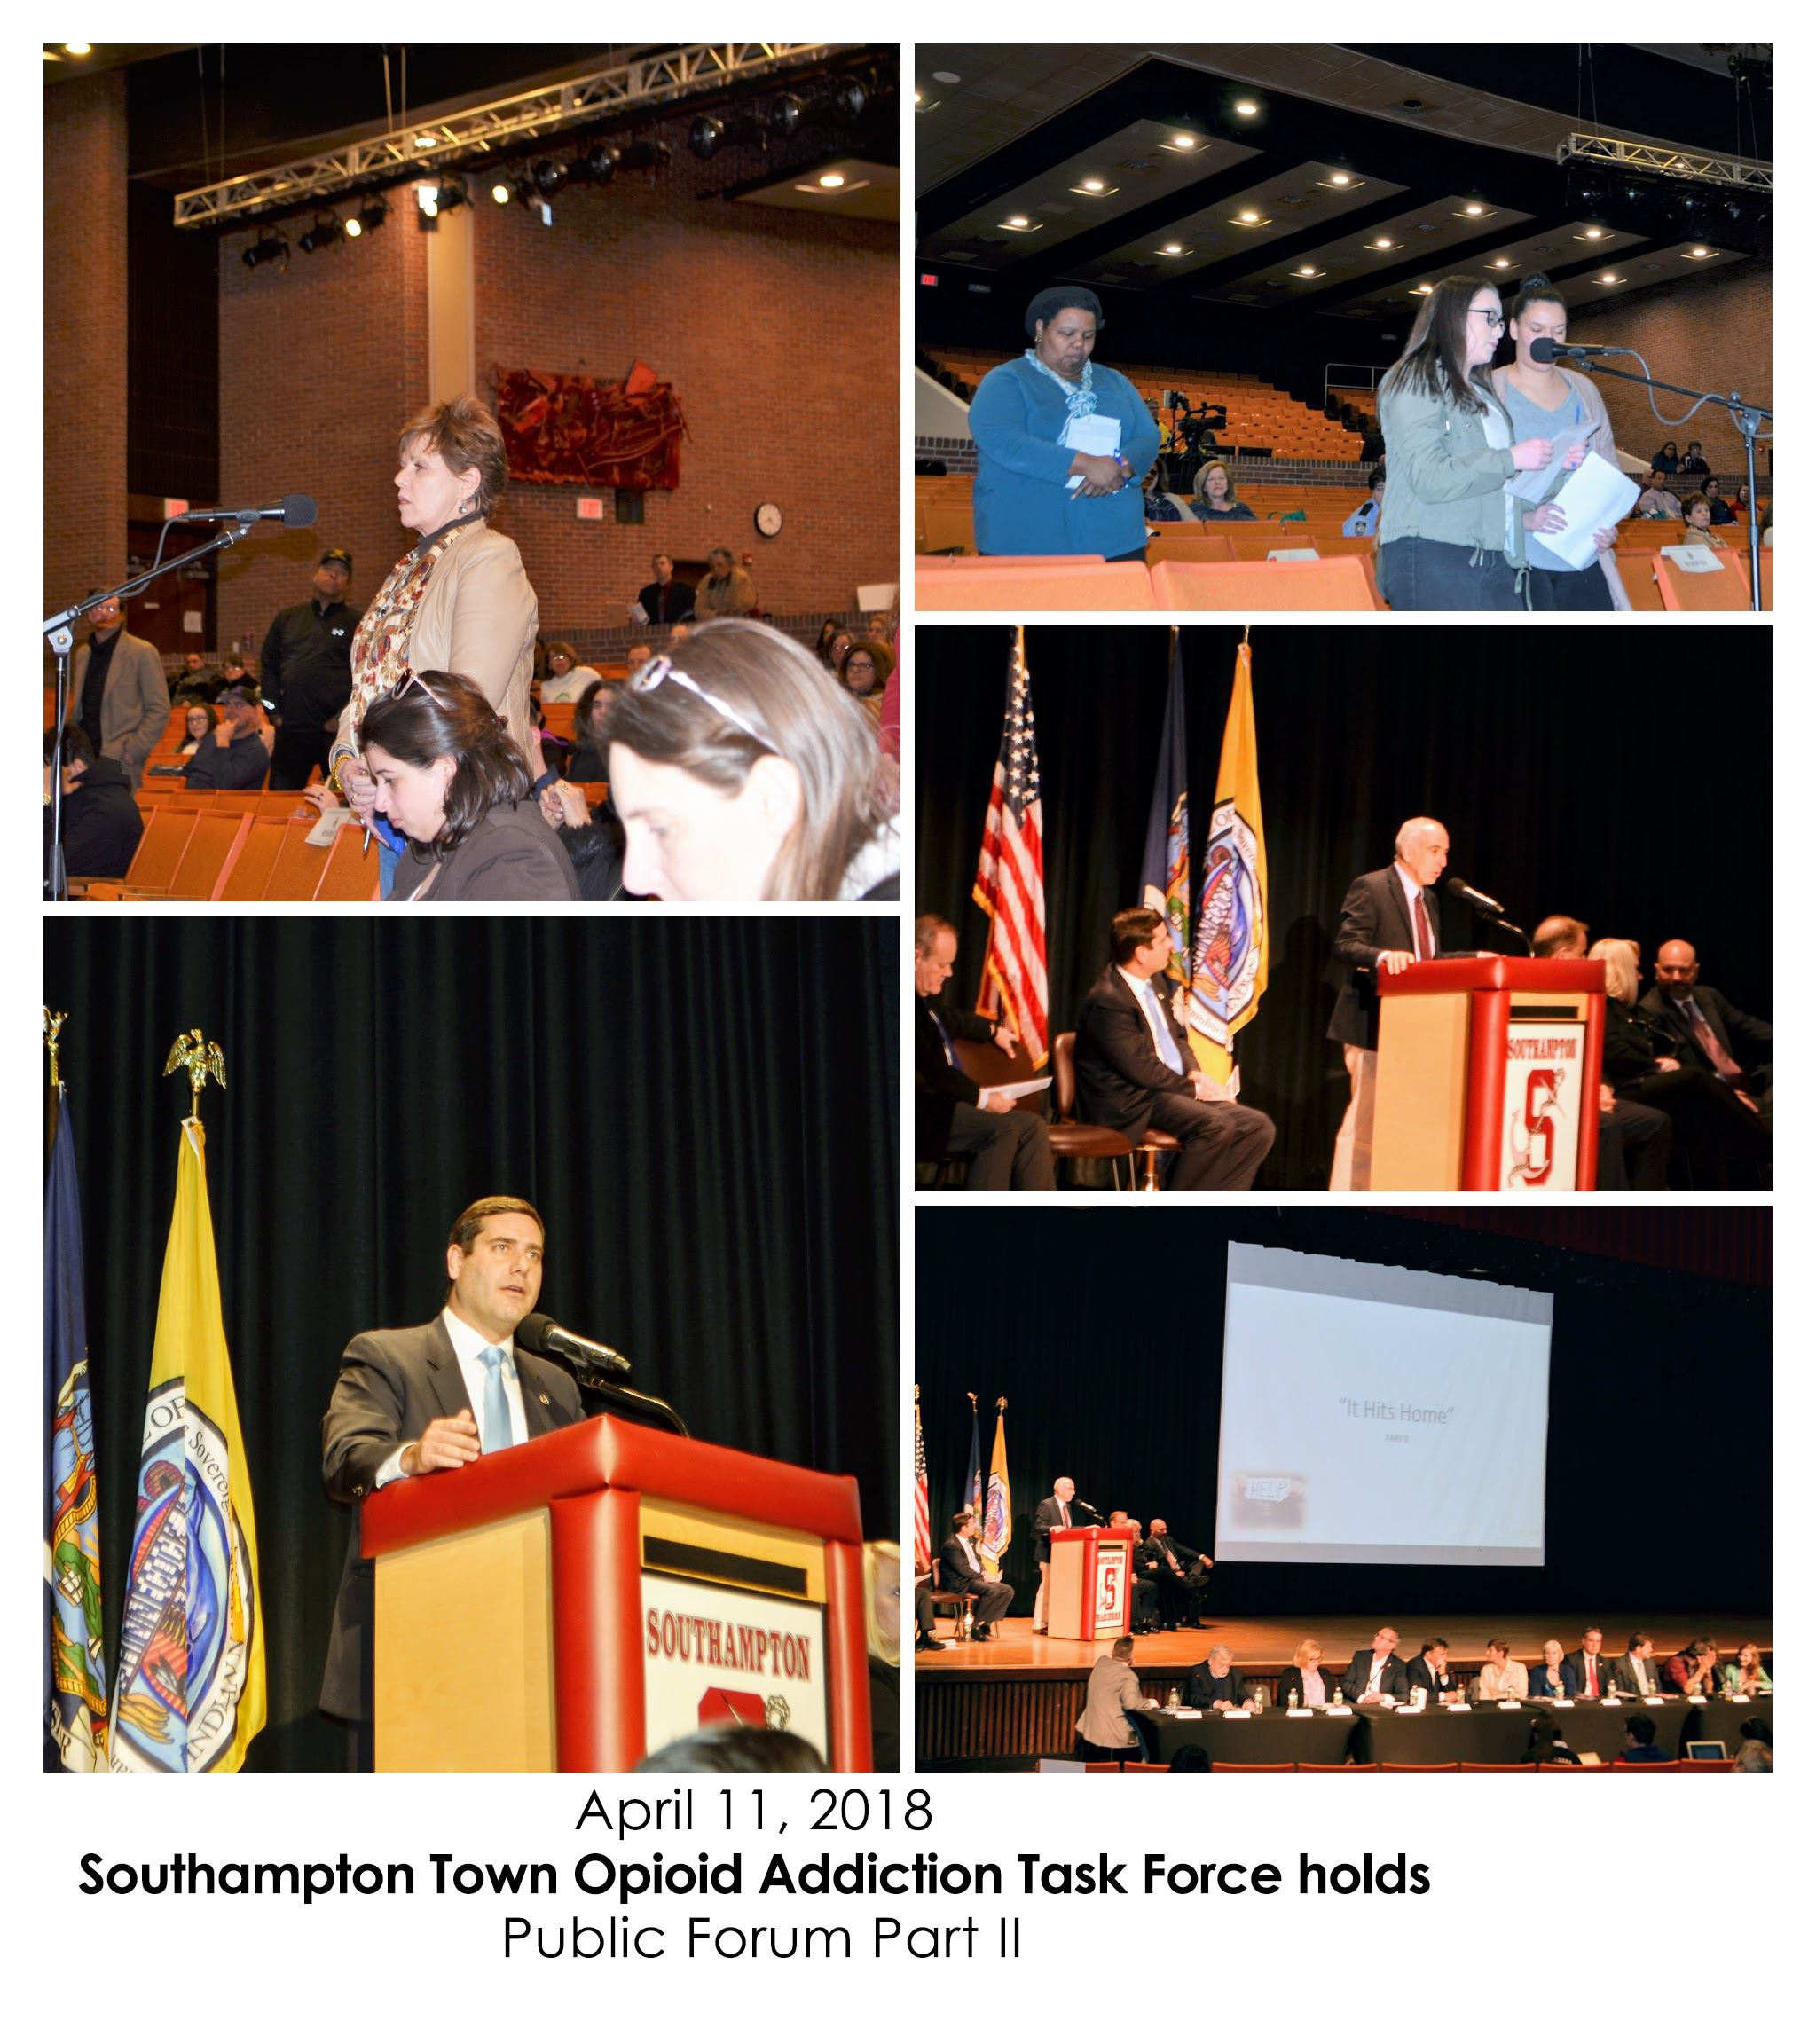 April 12, 2018 Southampton Town Opioid Addiction Task Force-COLLAGE